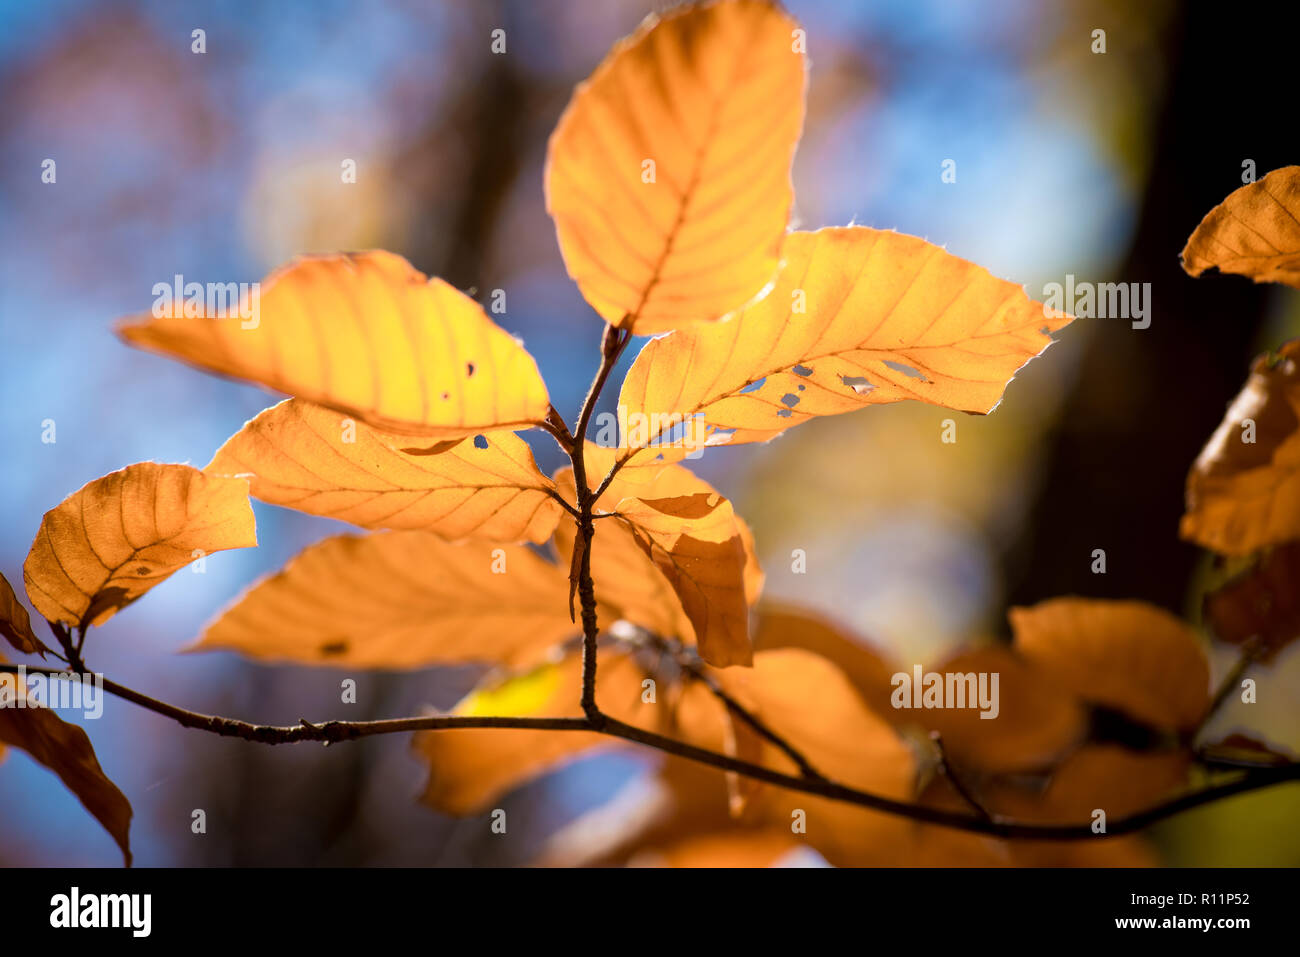 Beautiful macro autumn image - yellow leaves, warm tones, gentle blurry background, sun shining trough - the beauty of the fall - Stock Image